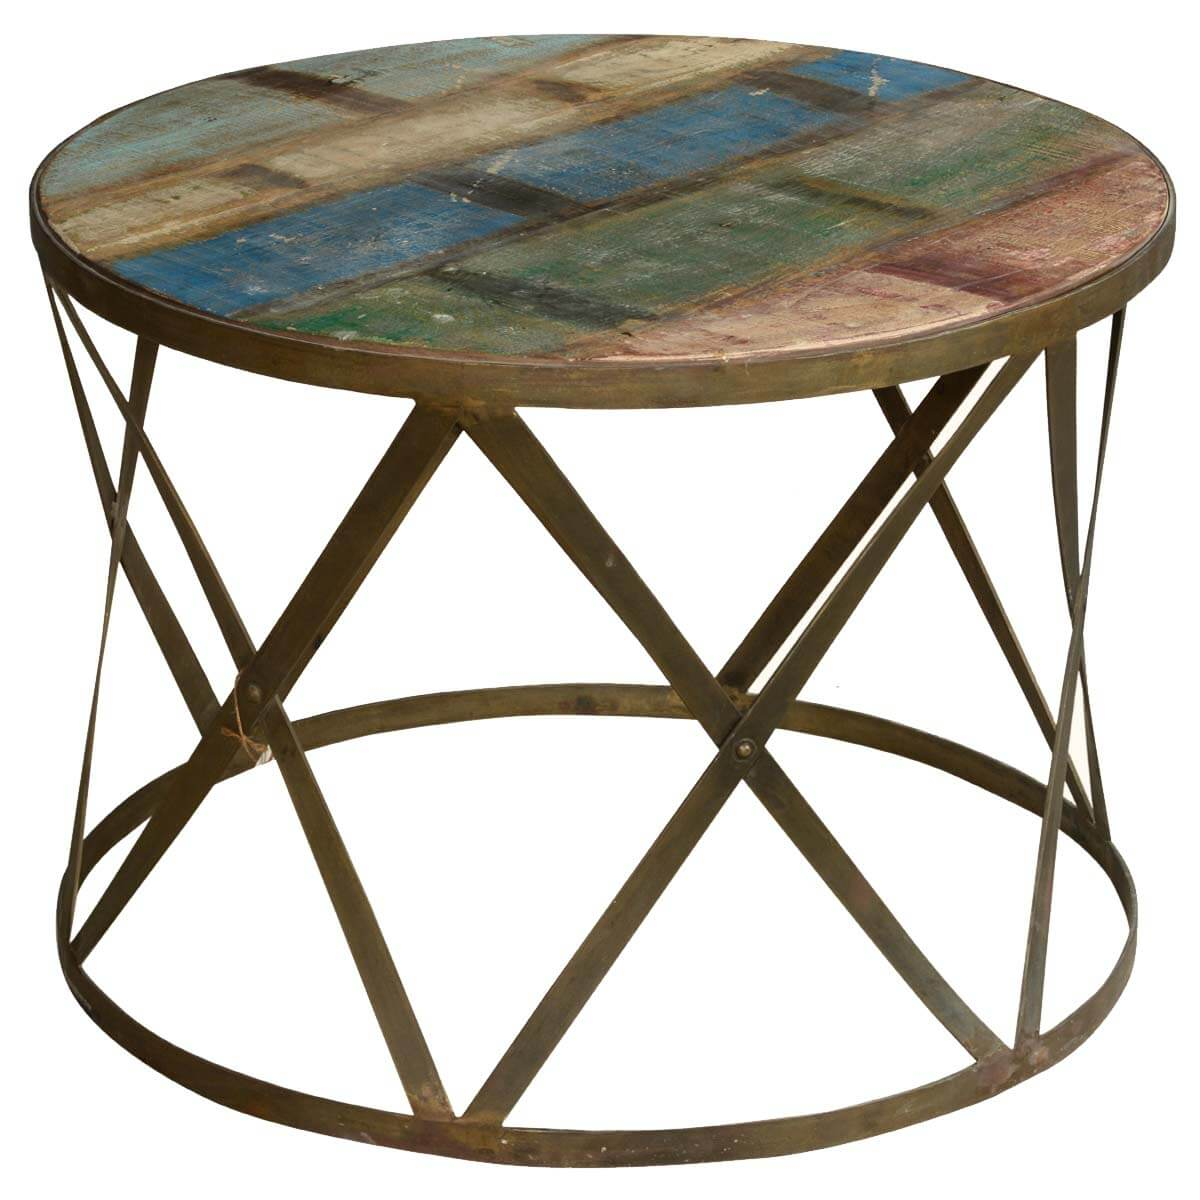 Table Round Industrial Coffee Table Gratifying Ballard: Retro Style Solid Wood And Iron Round Industrial Coffee Table